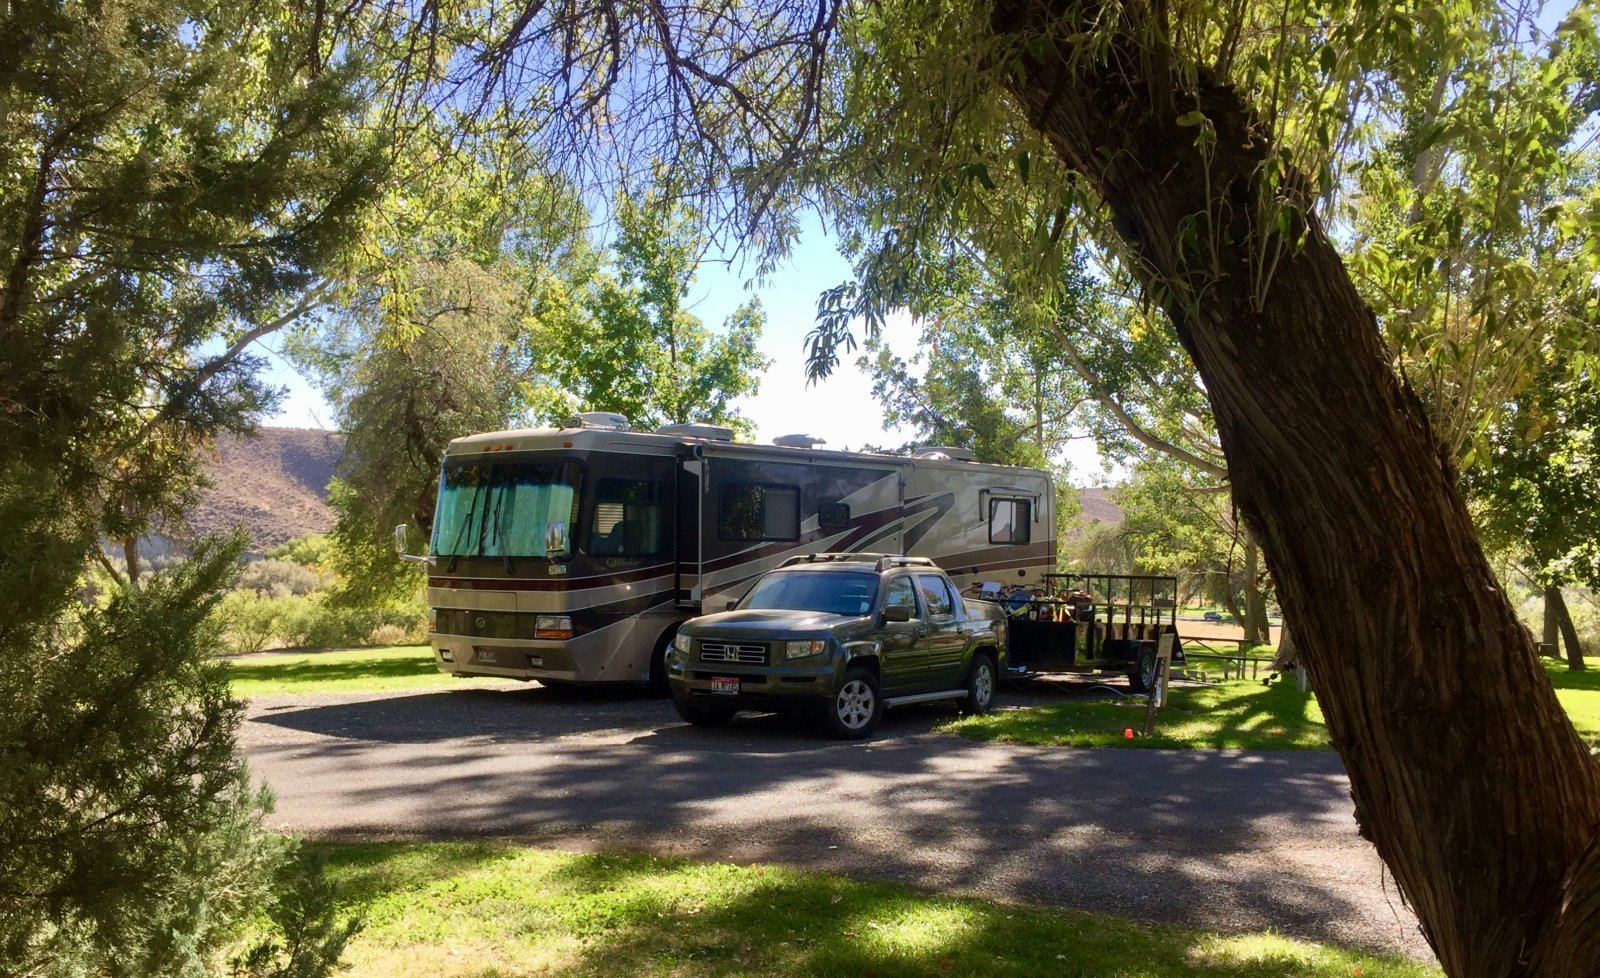 10 Hard Truths About RV Parks (And What To Do About Them)